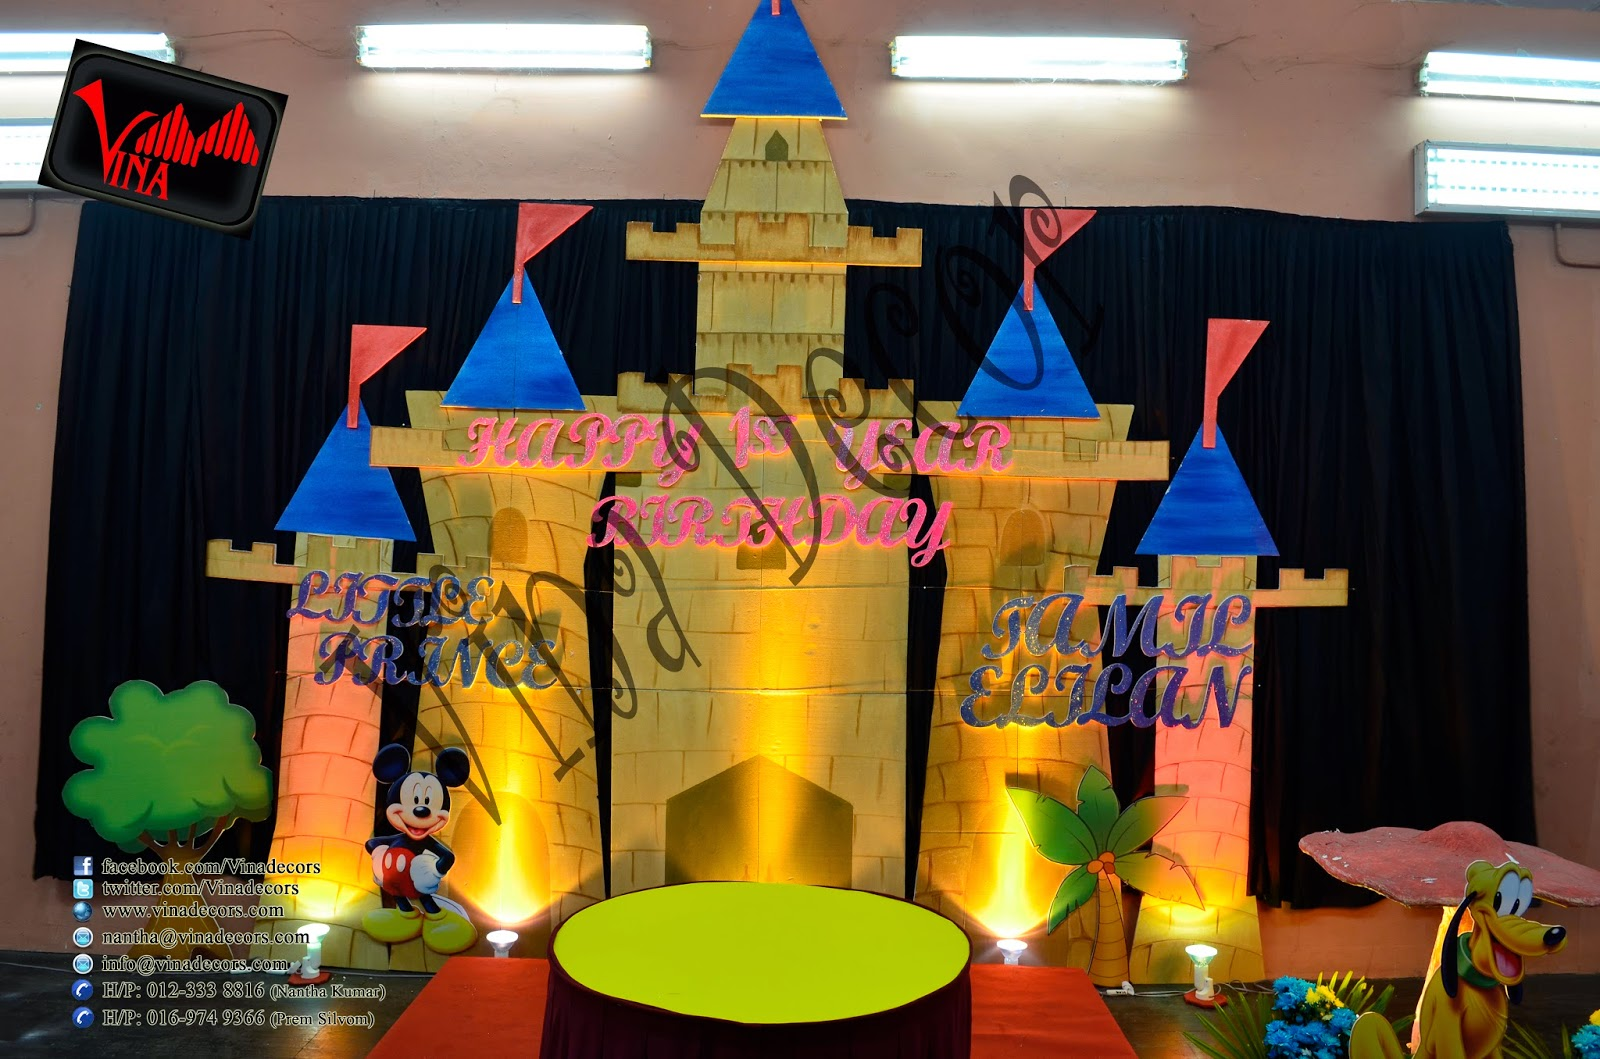 Birthday Decoration - 1st Year Birthday Decoration with Disney Castle - Mickey, Minnie and Friends (Colorful Theme Color) for Little Prince Tamil Elilan on 31/05/2013 at Beranang by Vina Canopy & Decor (Entrance decor with balloon arch, Balloon pillar, Colorful curtains and Disney Castle backdrop setting).